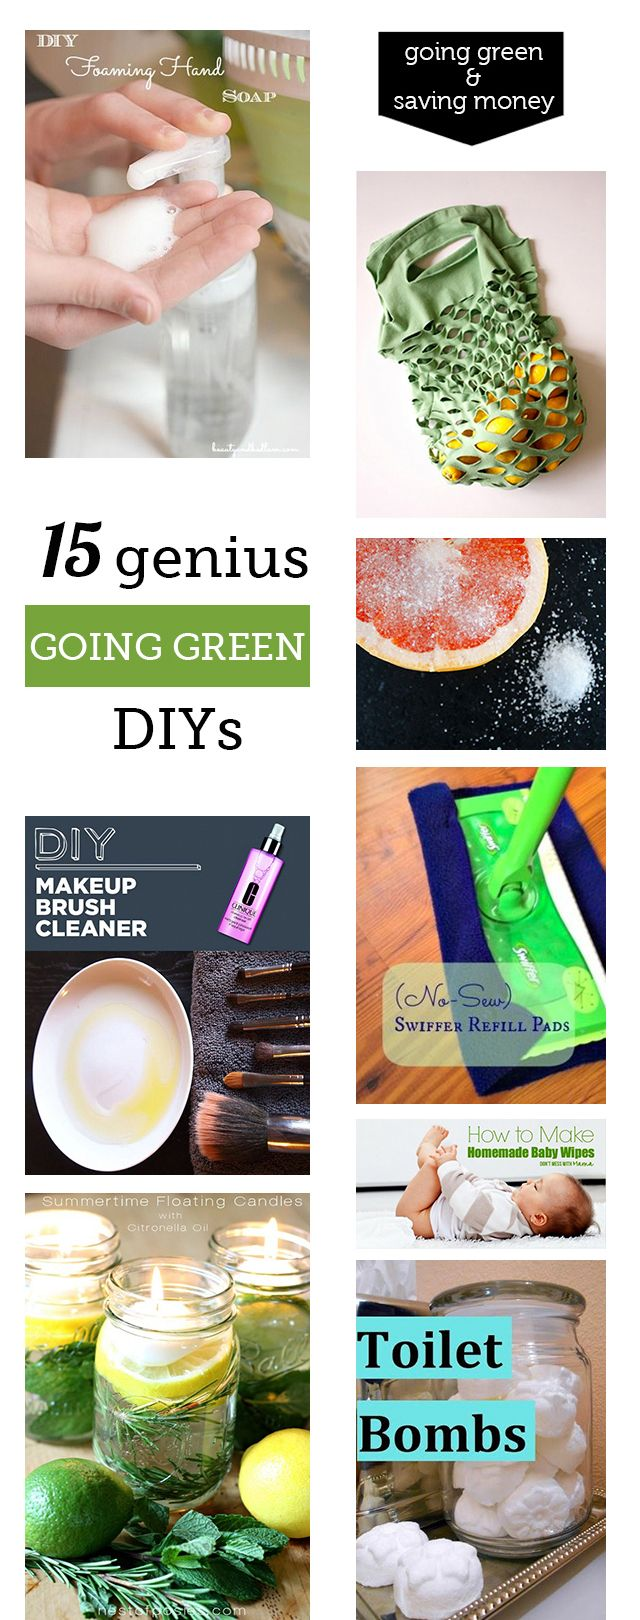 Diy cleaners and beauty products that will save me money for Homemade products to save money